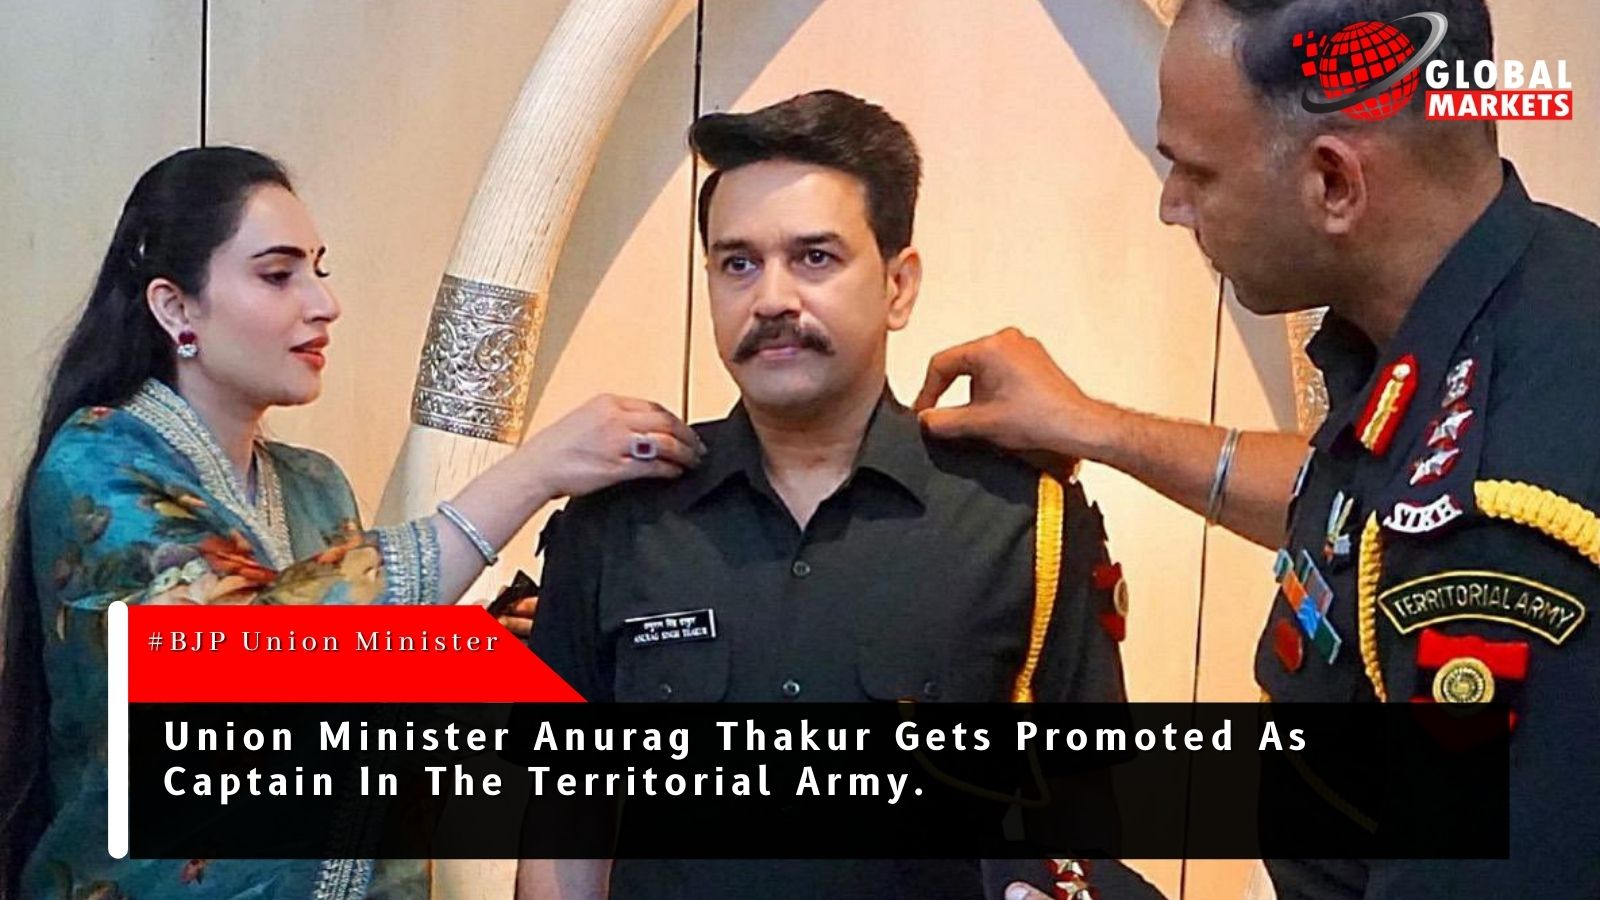 Union minister Anurag Thakur alloted as Captain in Territorial Army.